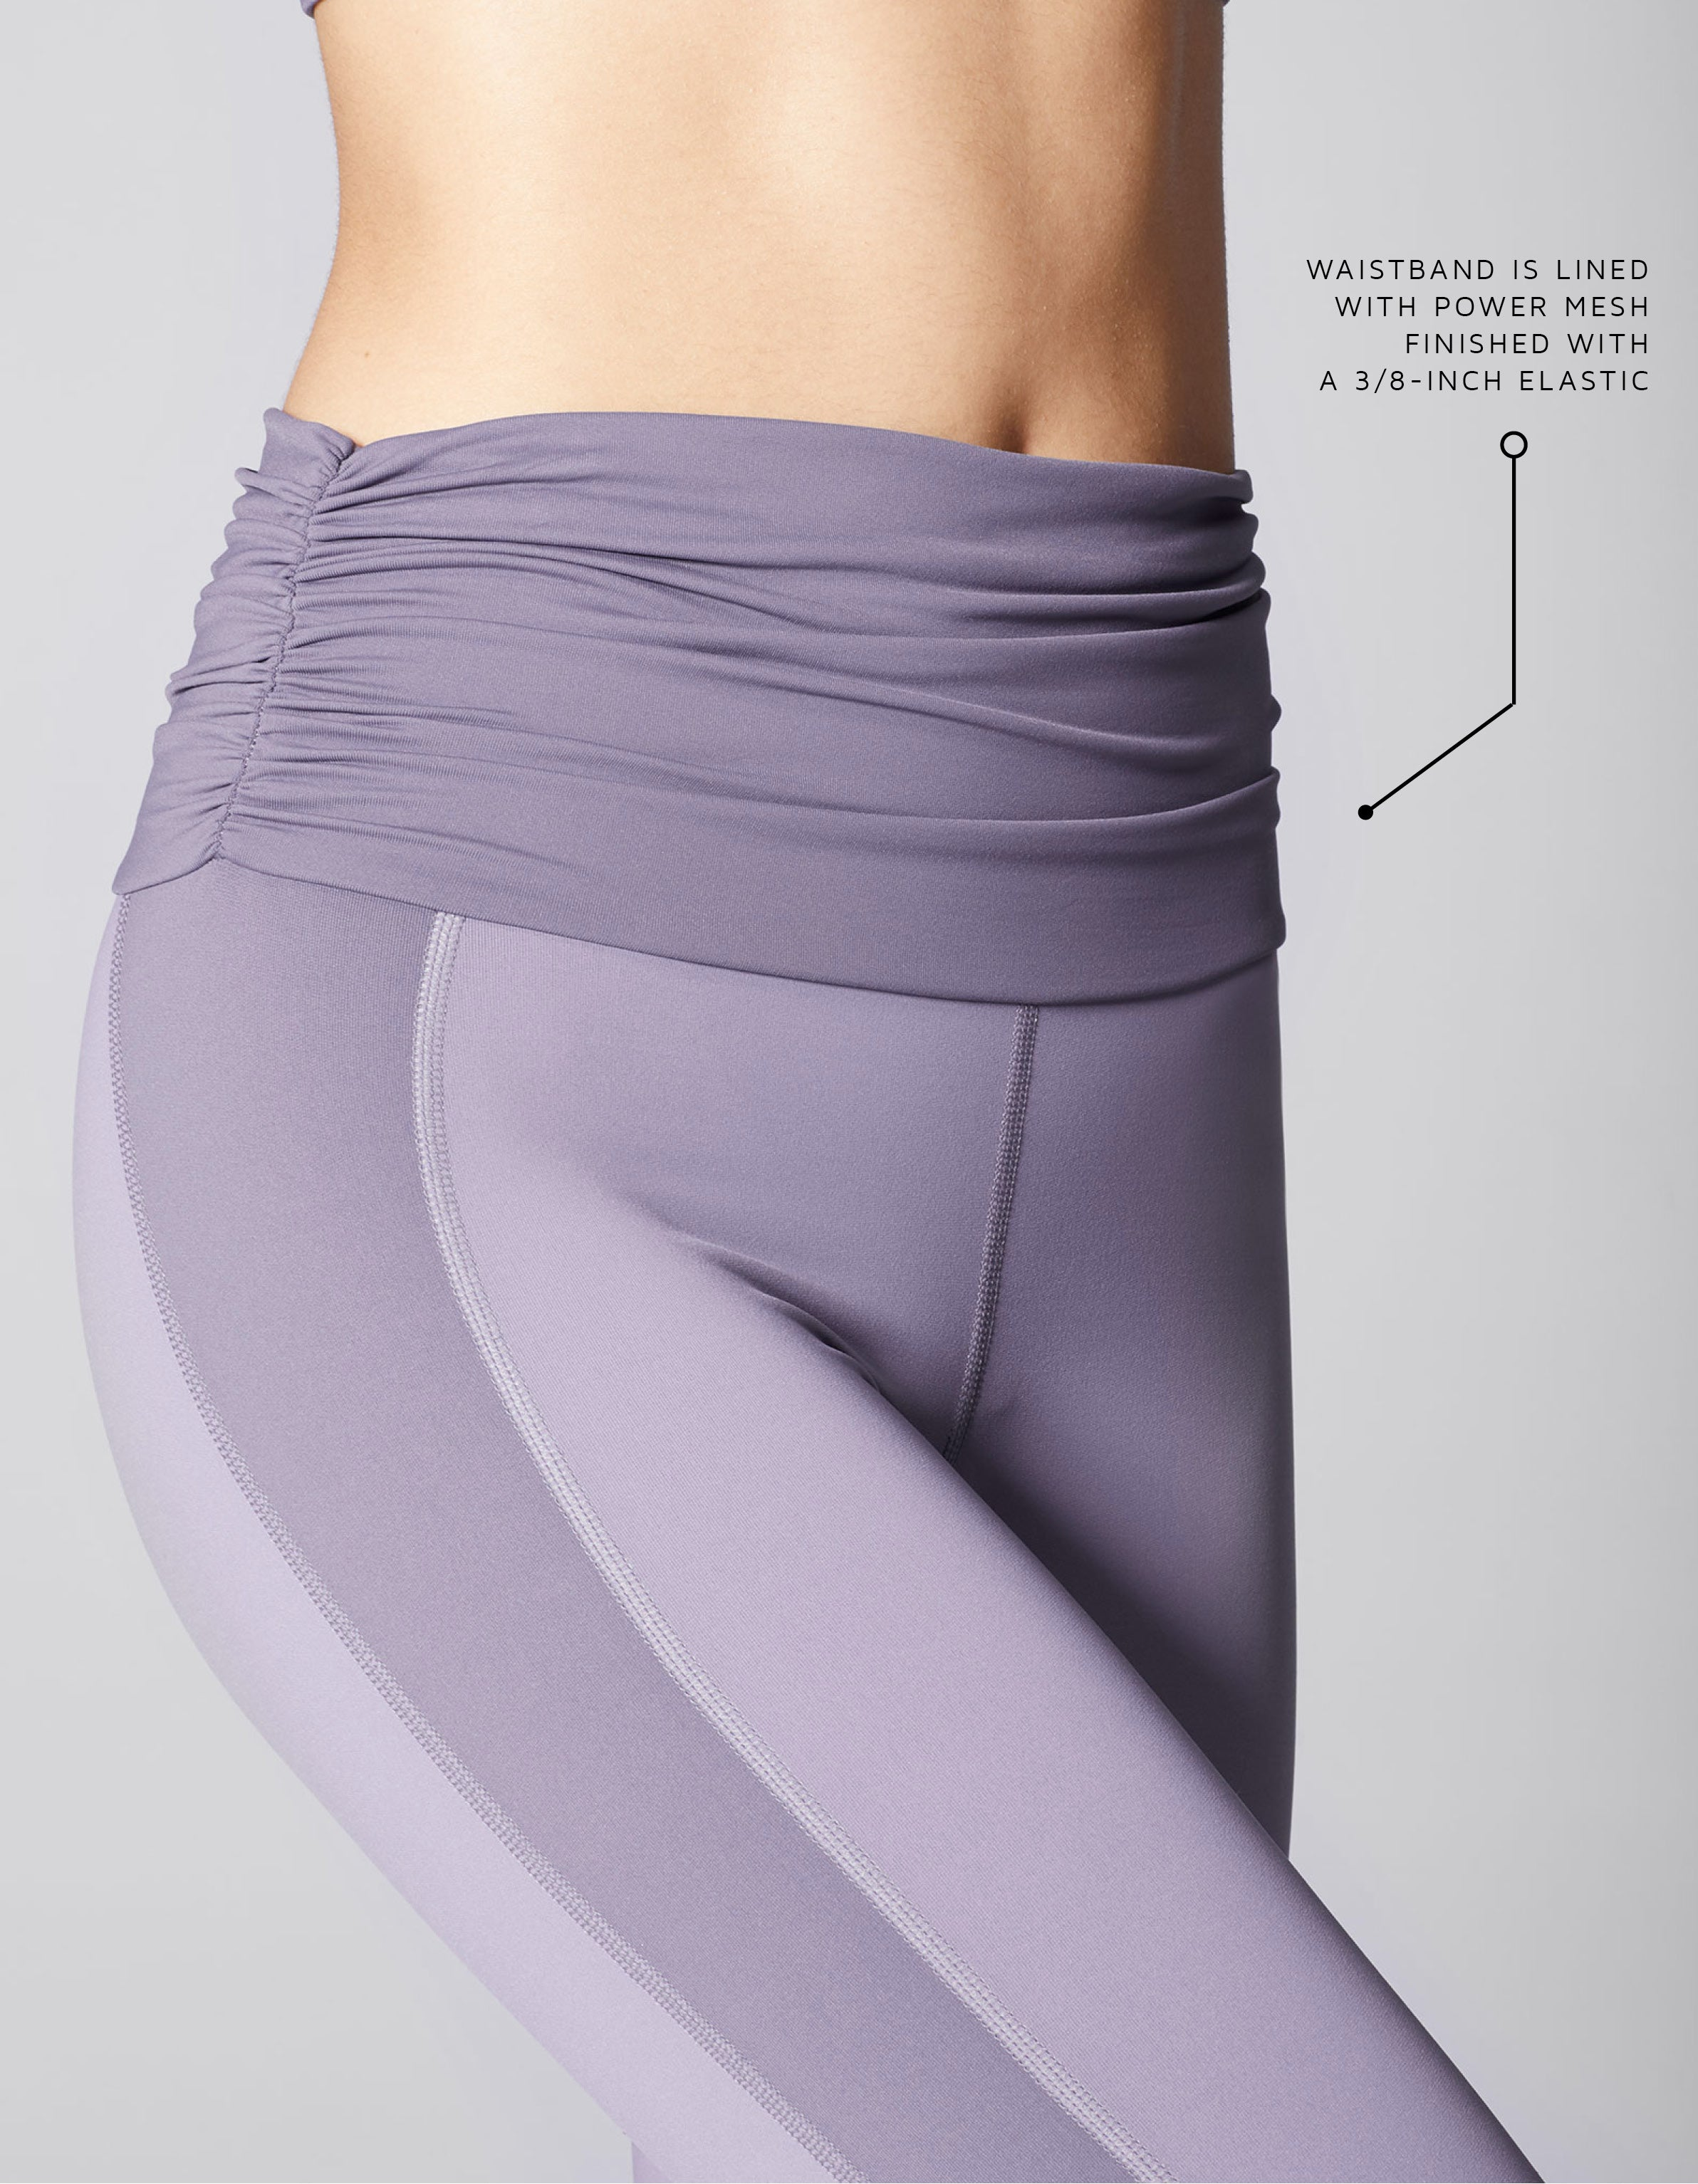 performance waistband